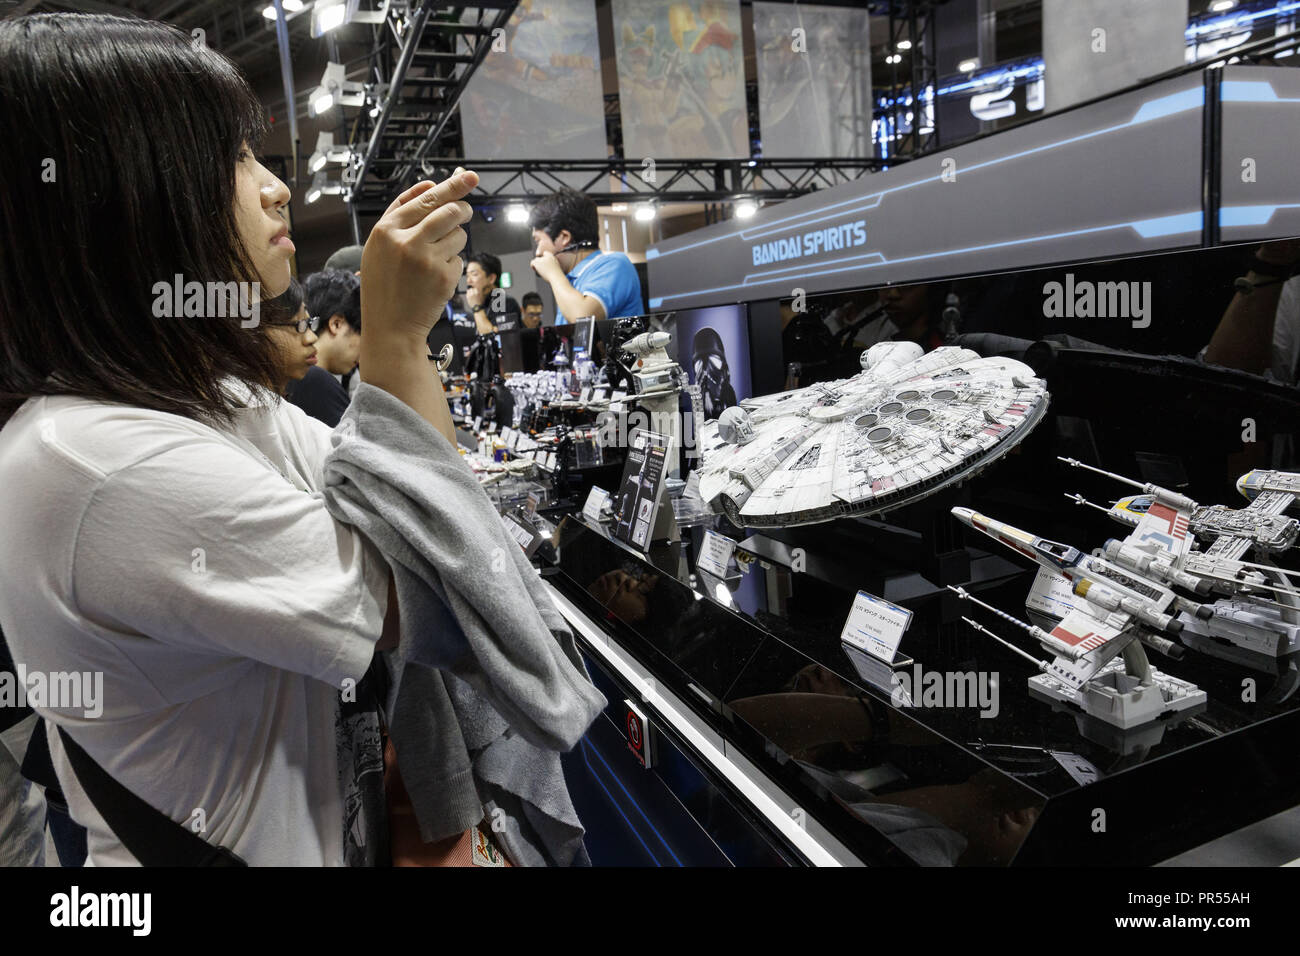 Tokyo, Japan  29th Sep, 2018  A woman takes a picture of Bandai Star